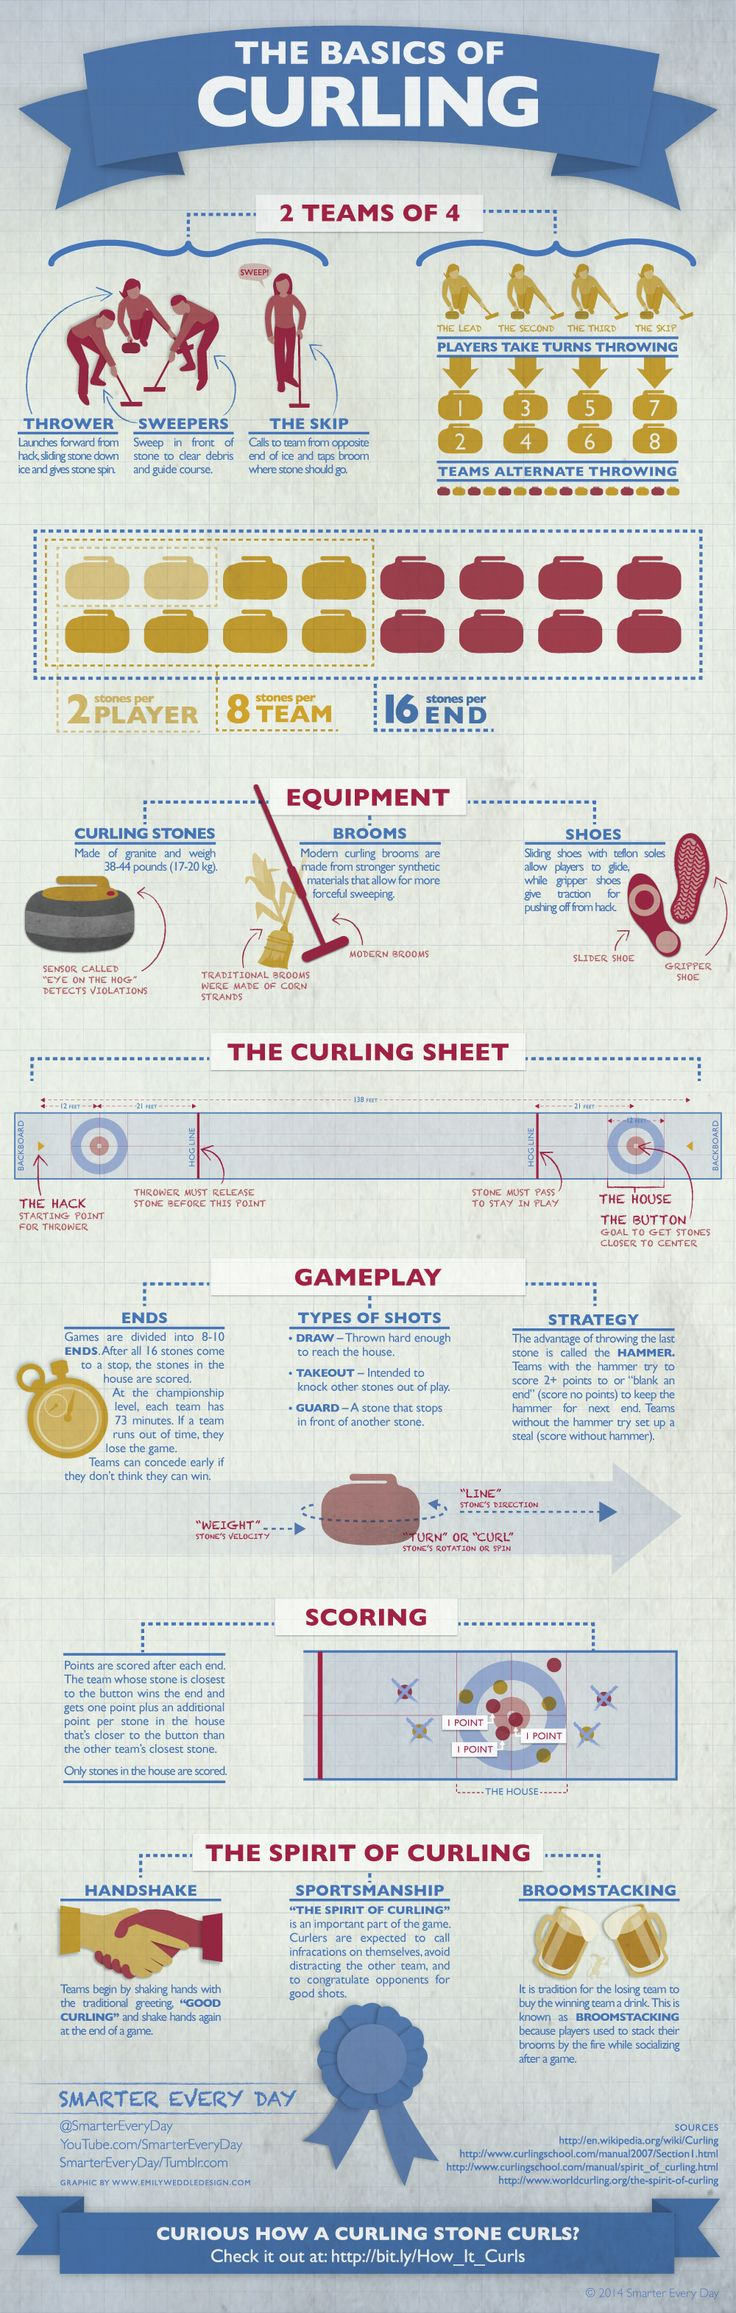 The basic goal of the game, as is with many other sports, is to gain more points than the opposing team. The game is traditionally played by two teams of four people. The surface upon which these players compete is known as the curling sheet.